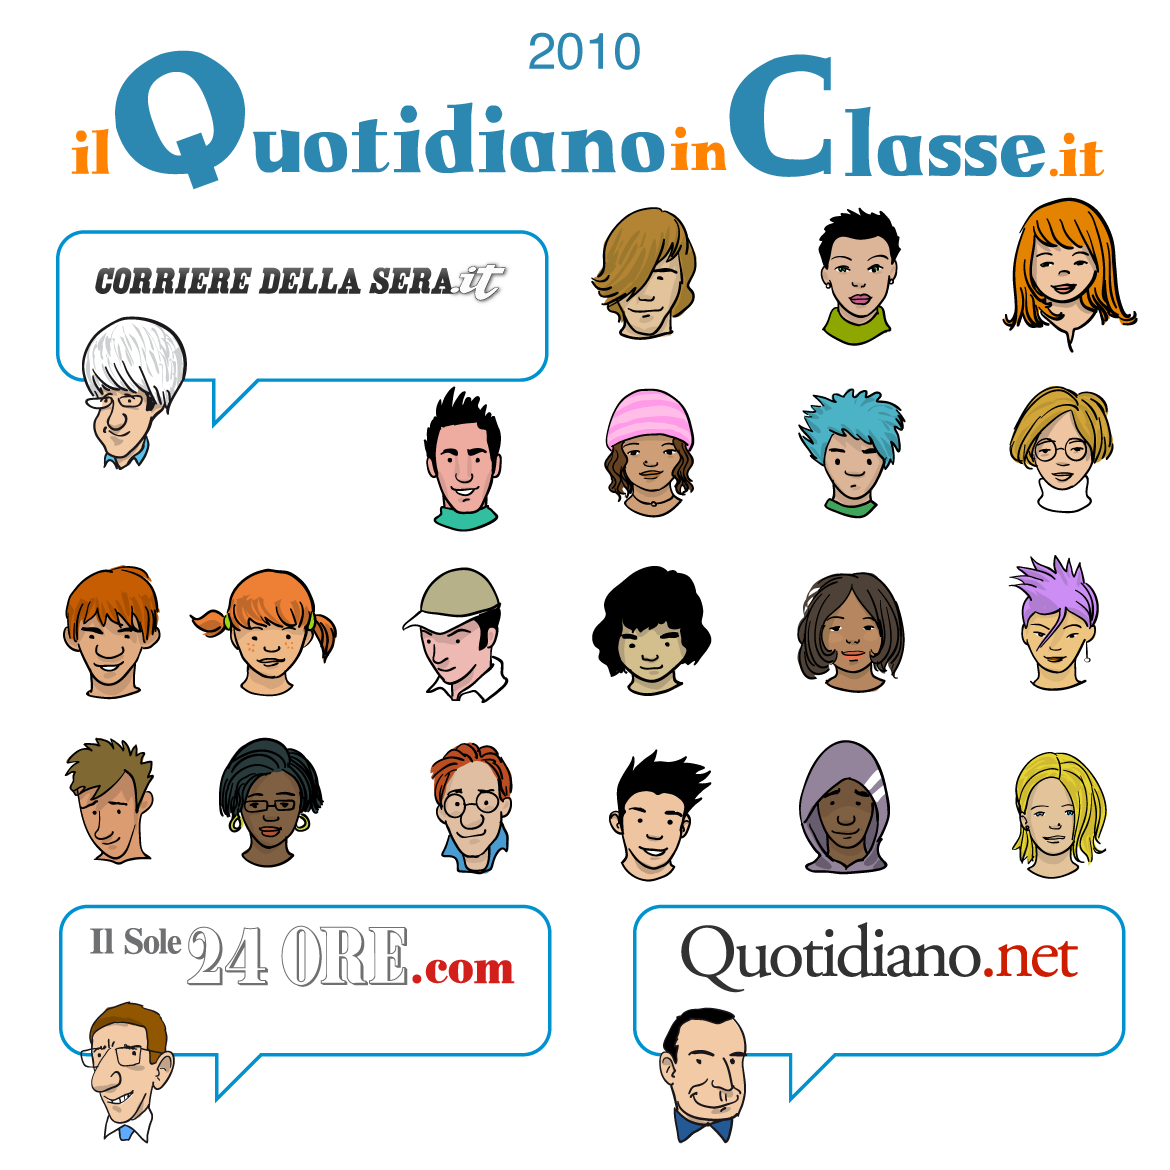 il_quotidiano_in_classe